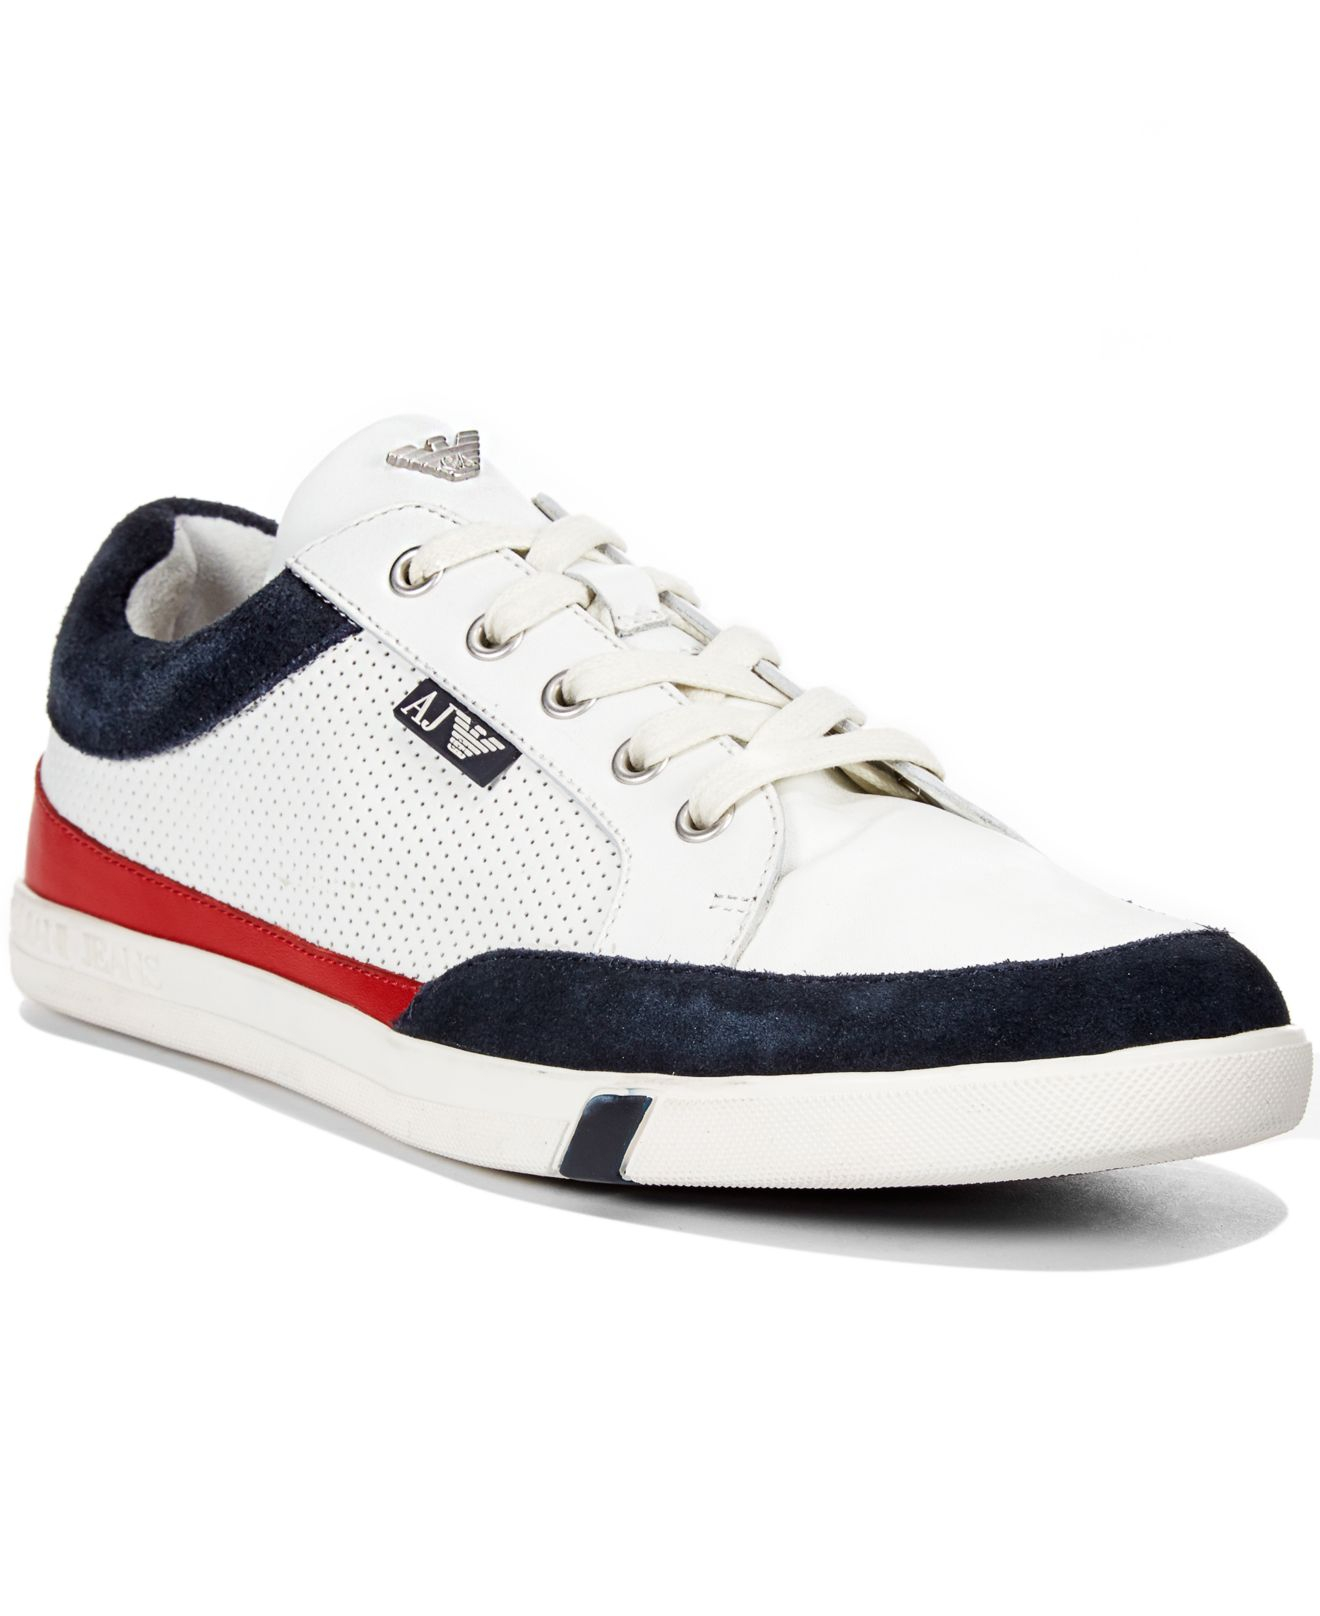 821b653fb59a Lyst - Armani Jeans Low Top Perforated Leather Sneakers in White for Men